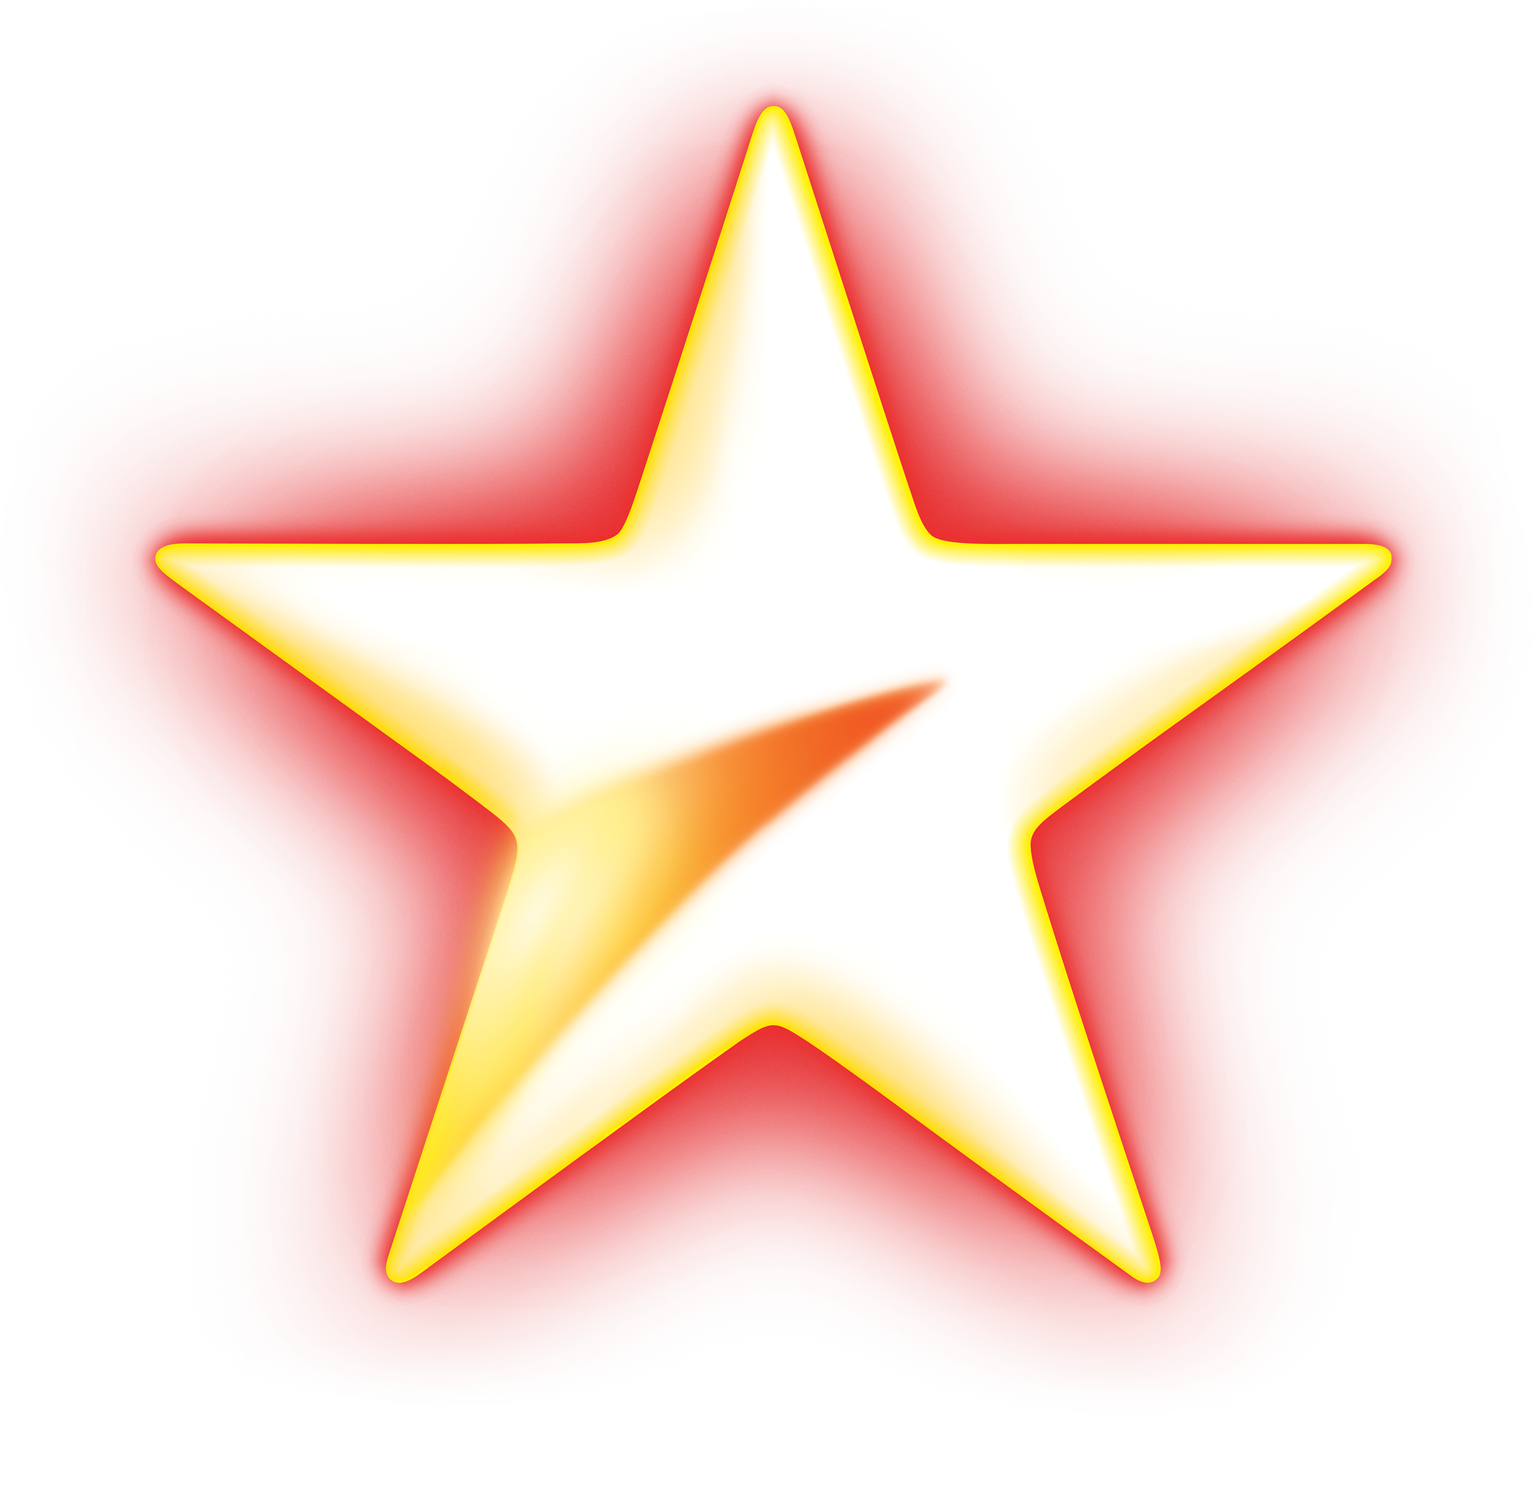 PNG HD Images Of Stars - 139975